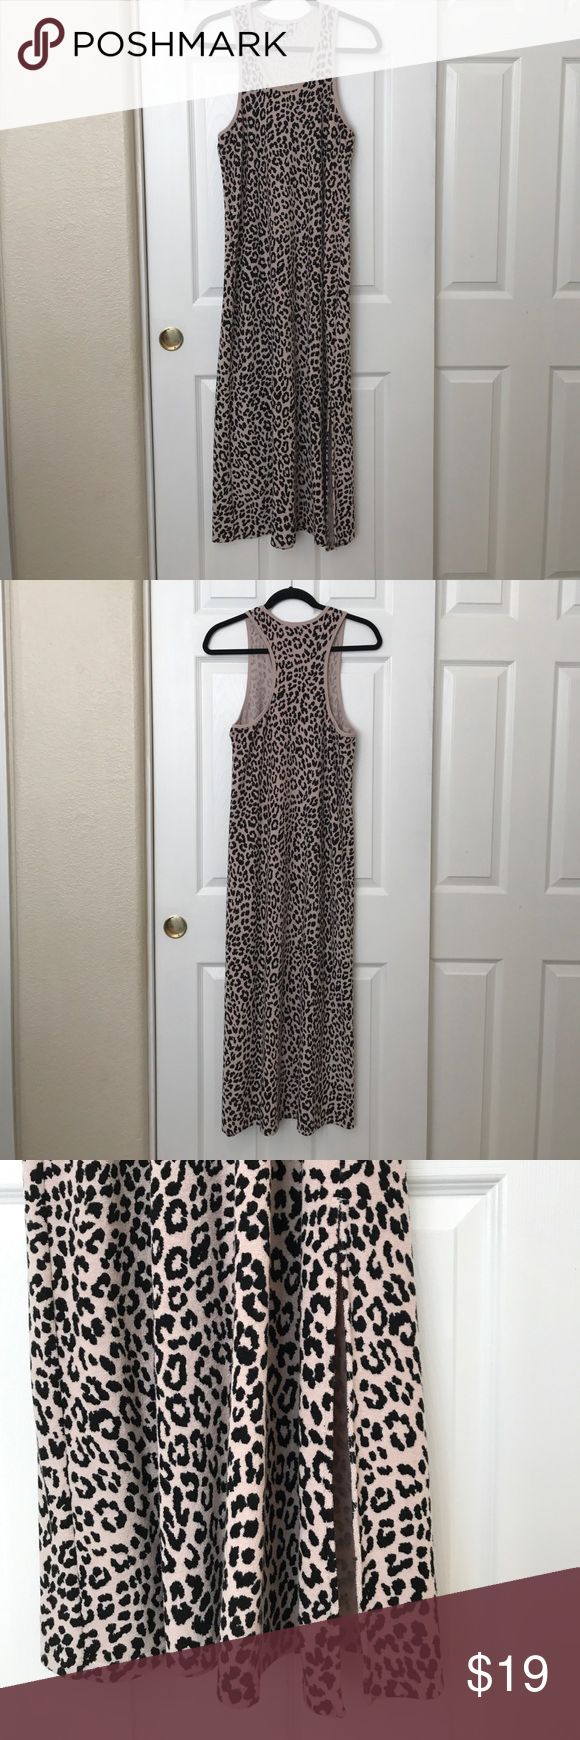 "Frou Frou Dress Frou Frou dress, size Medium. Animal print on a plush terry cloth material. Measures 51"" from top of shoulder. Has racer back and slit in the front left area. Excellent preowned condition. Frou Frou Intimates & Sleepwear Pajamas"